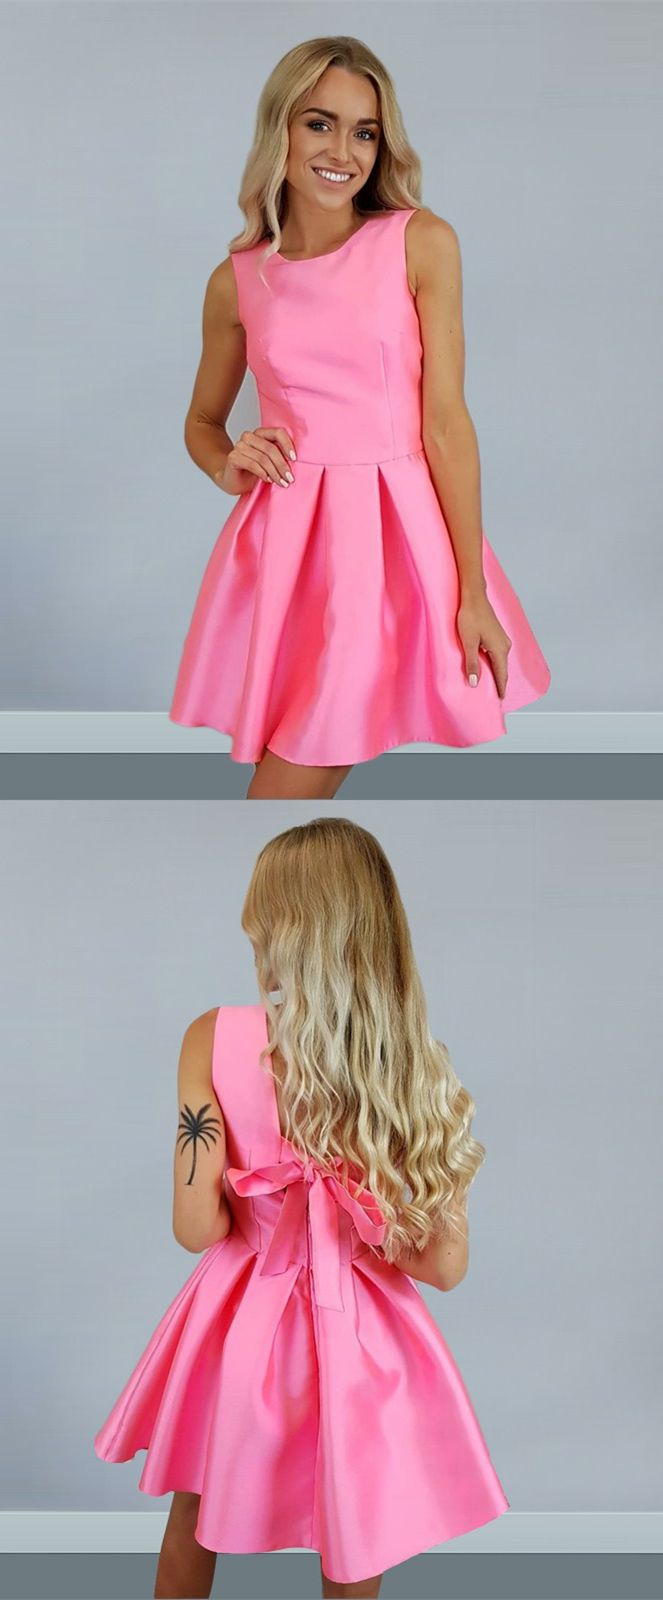 A-Line Round Neck Rose Pink Satin Short Homecoming Dress with Bowknot